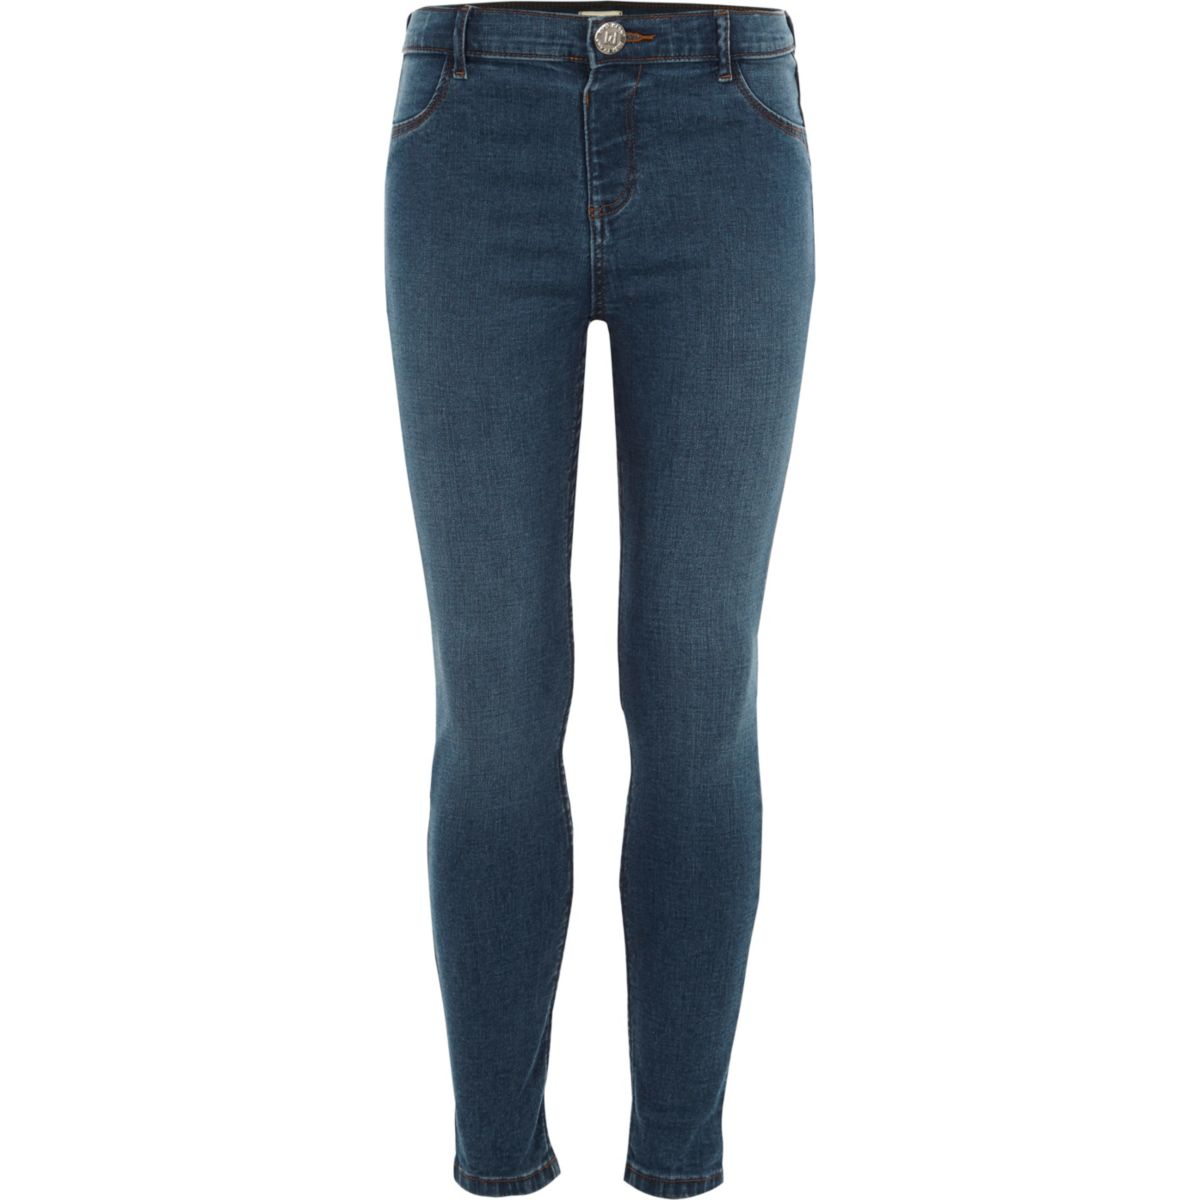 Molly – Jean skinny bleu taille haute pour fille